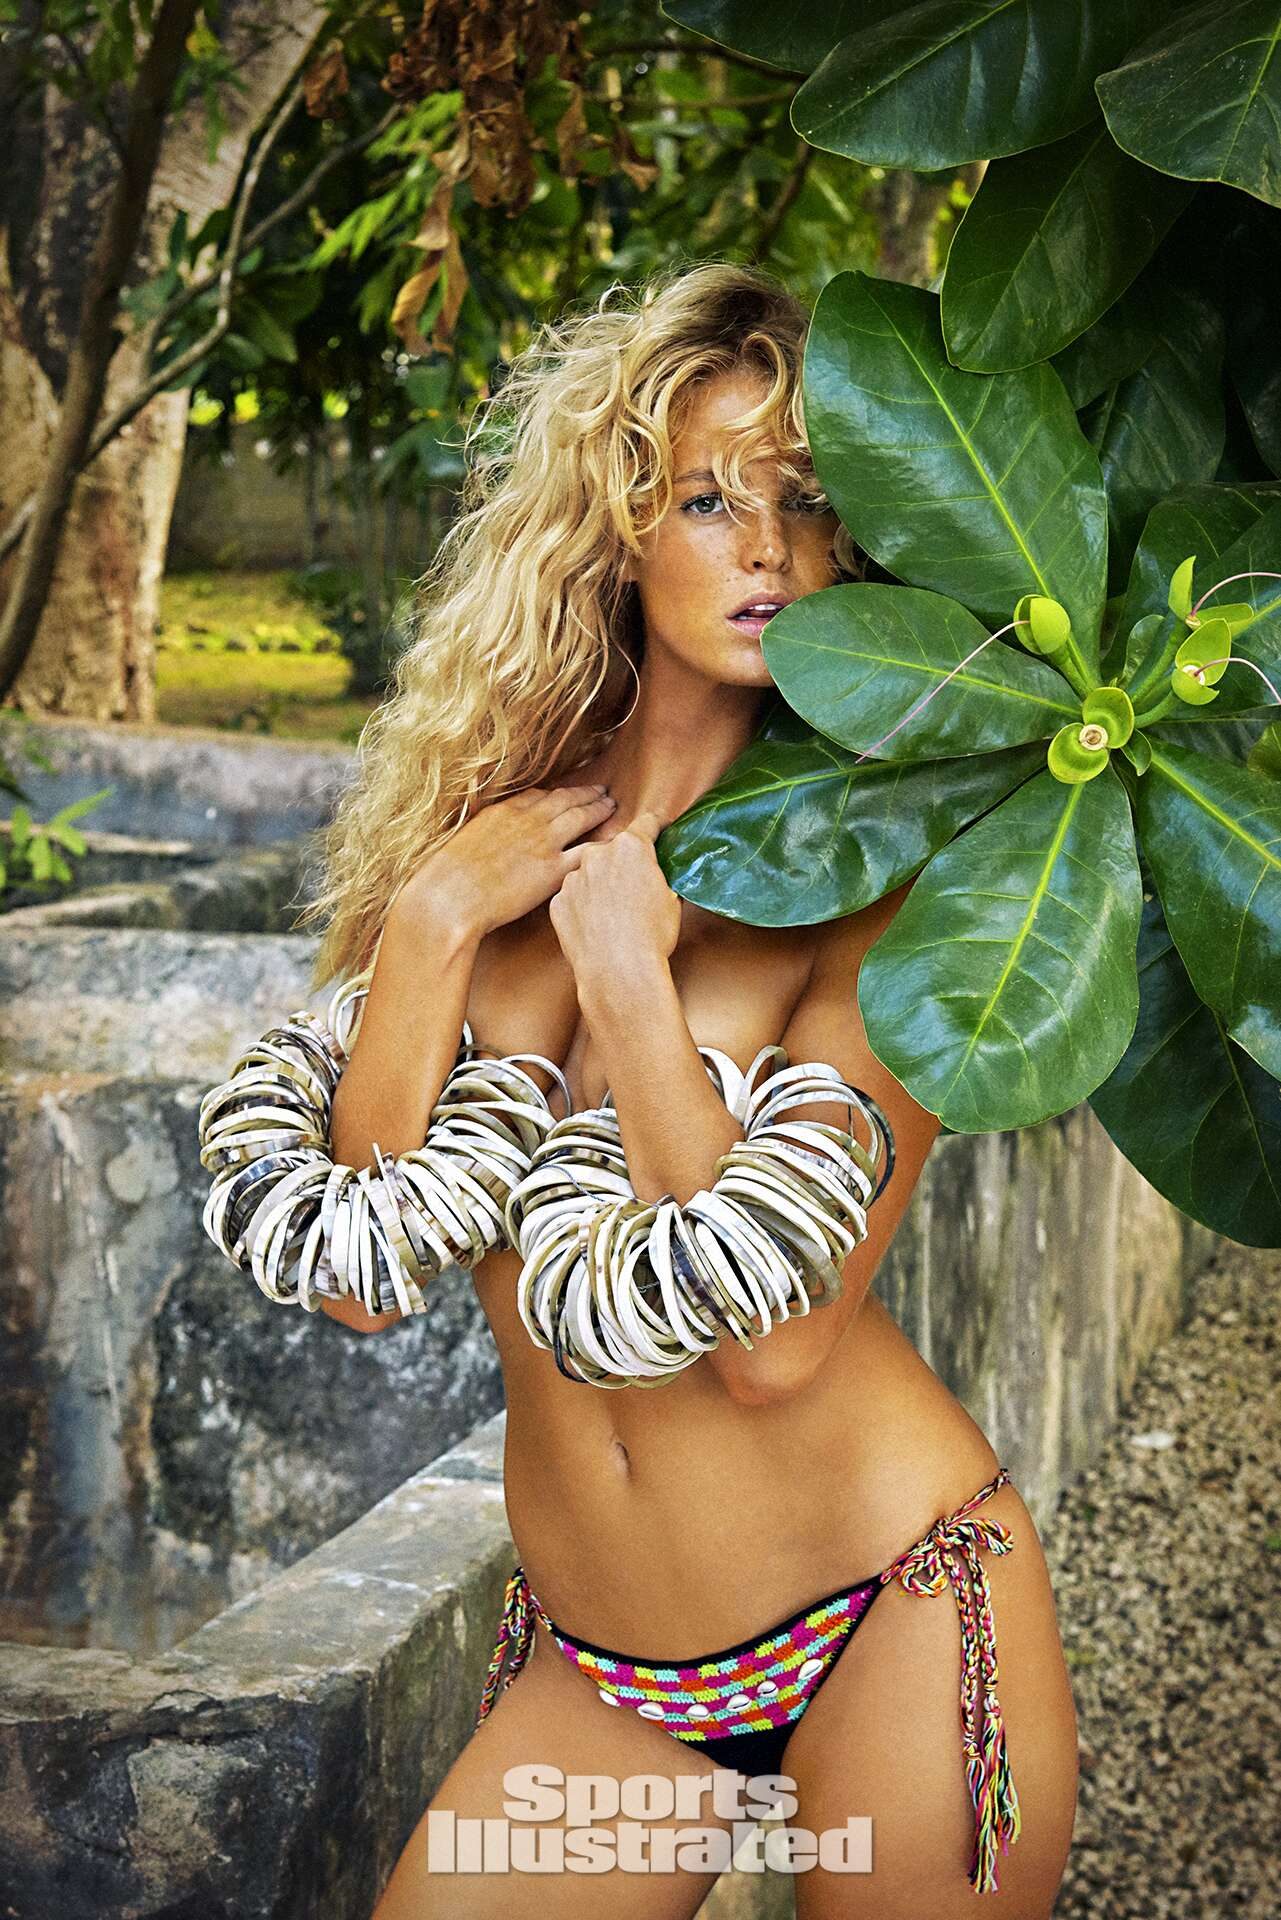 Erin Heatherton was photographed by Ruven Afanador in Zanzibar. Swimsuit by Anna Kosturova.